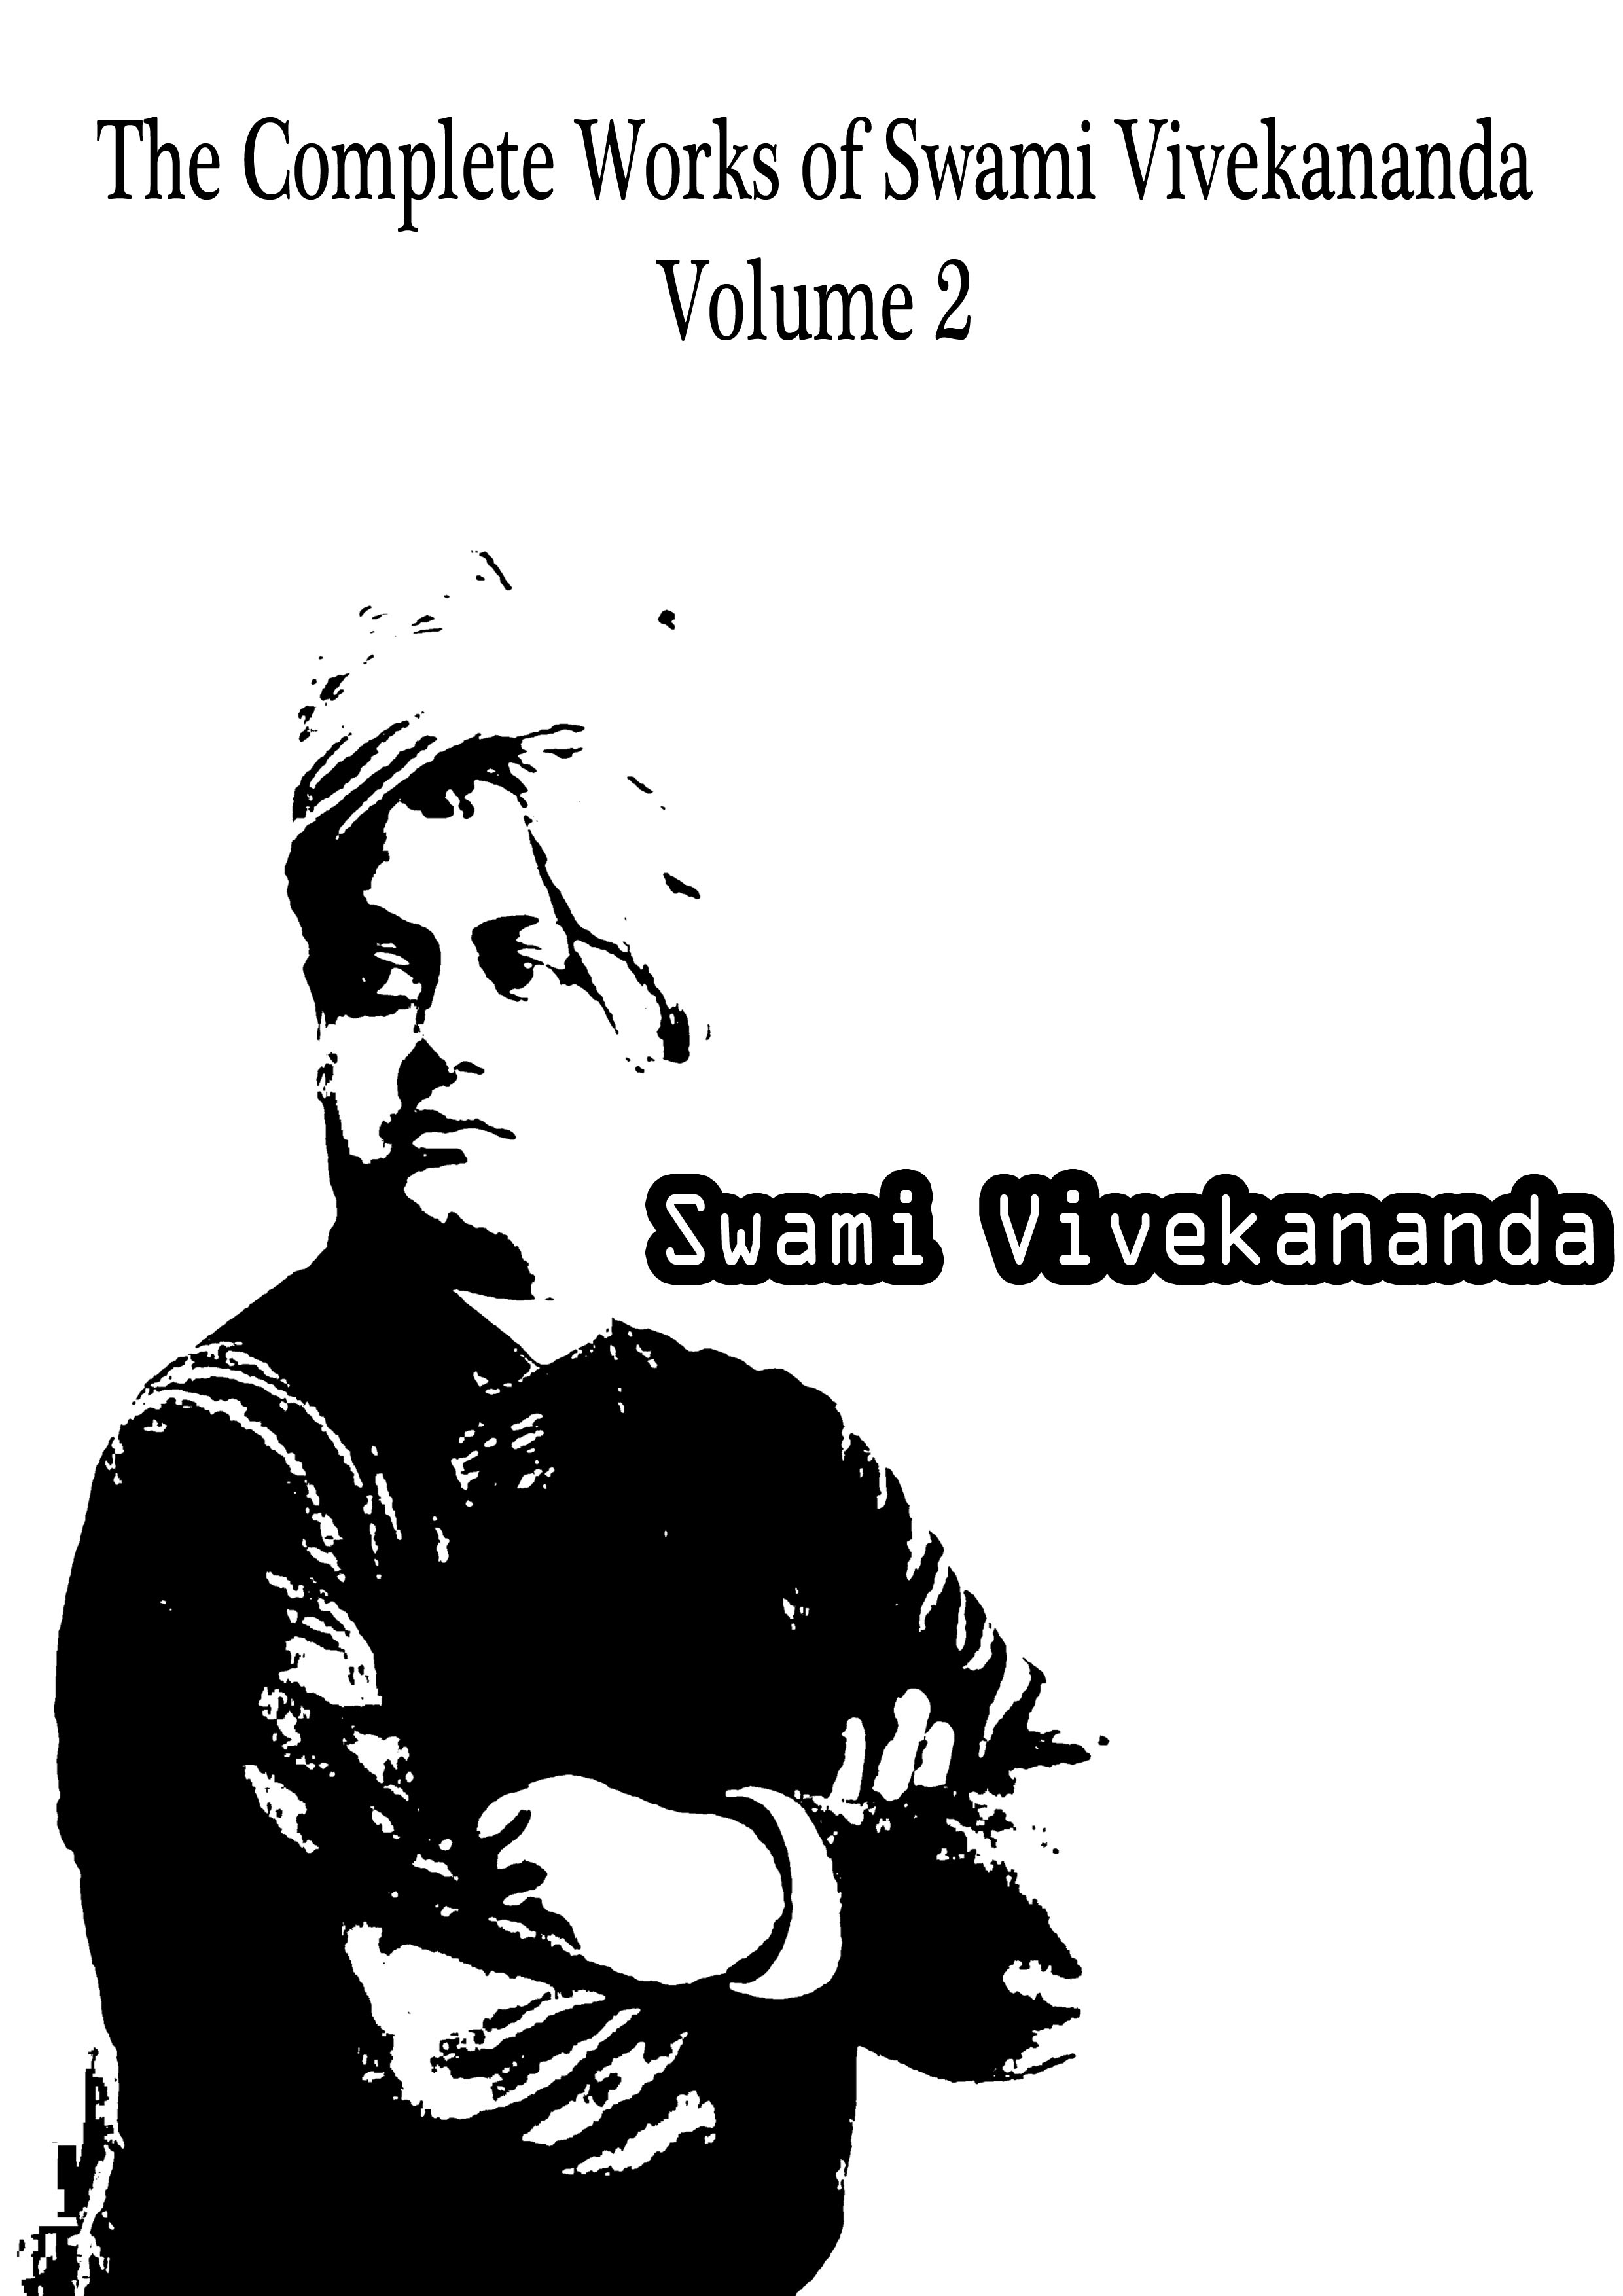 The Complete Works of Swami Vivekananda Volume 2